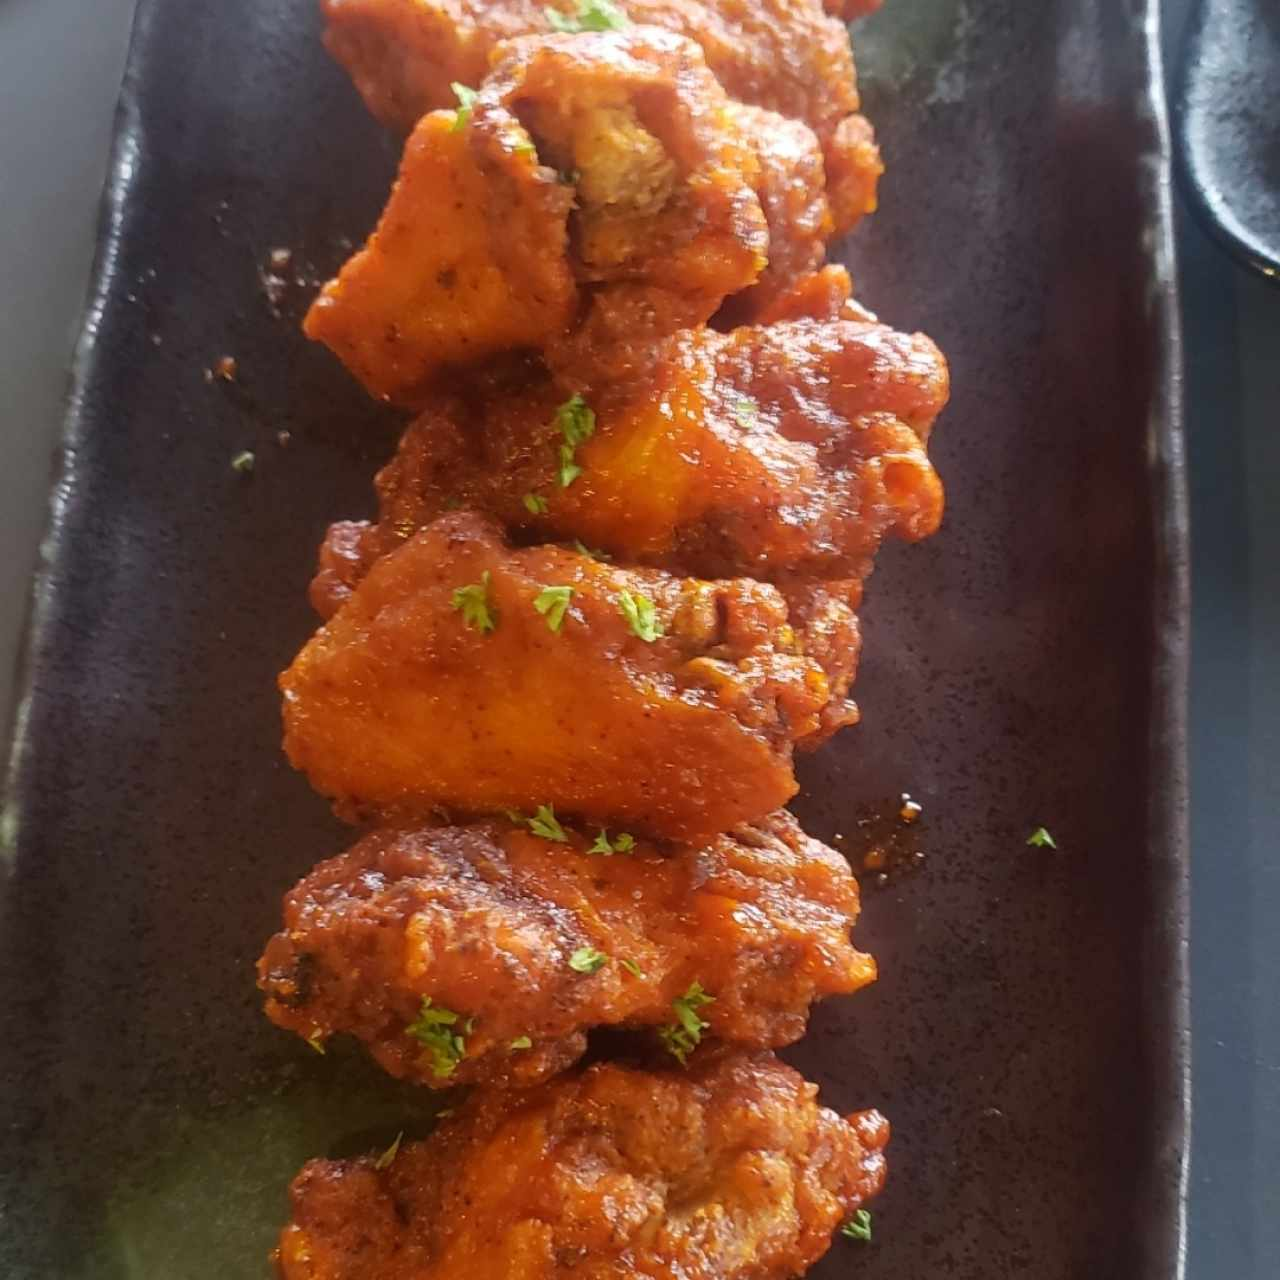 Tapas - Wings